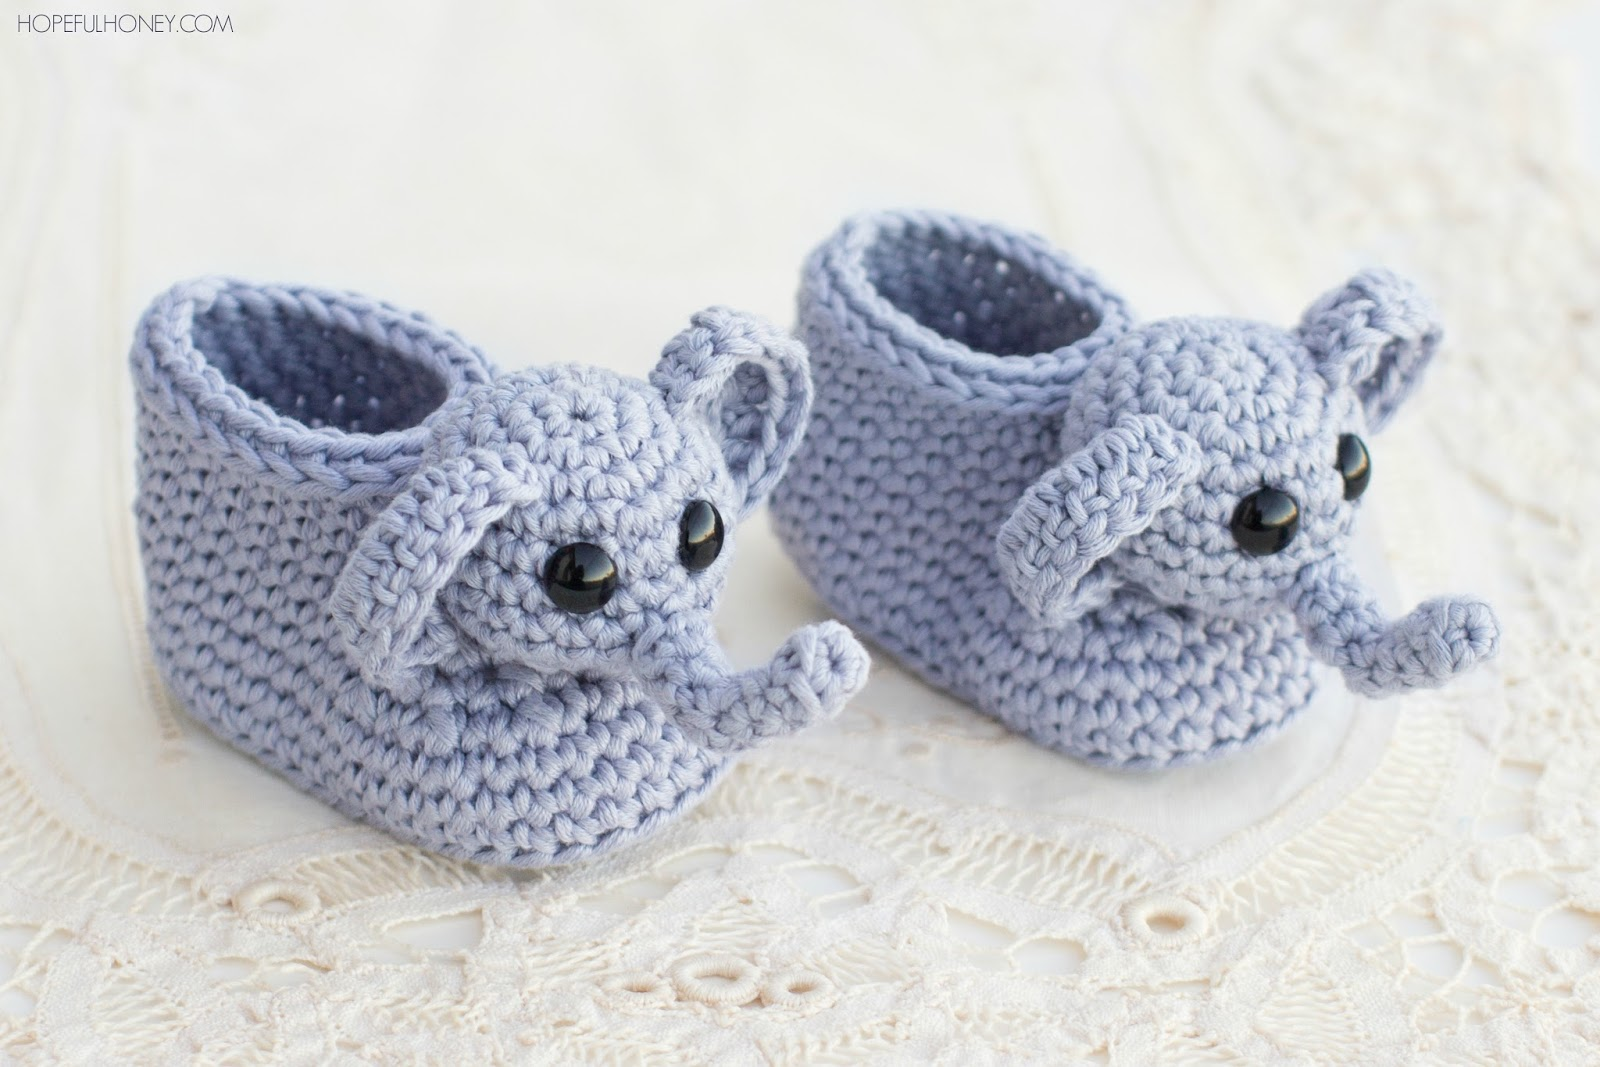 Crochet Baby Booties Pattern For Free : Hopeful Honey Craft, Crochet, Create: Ellie The Elephant ...